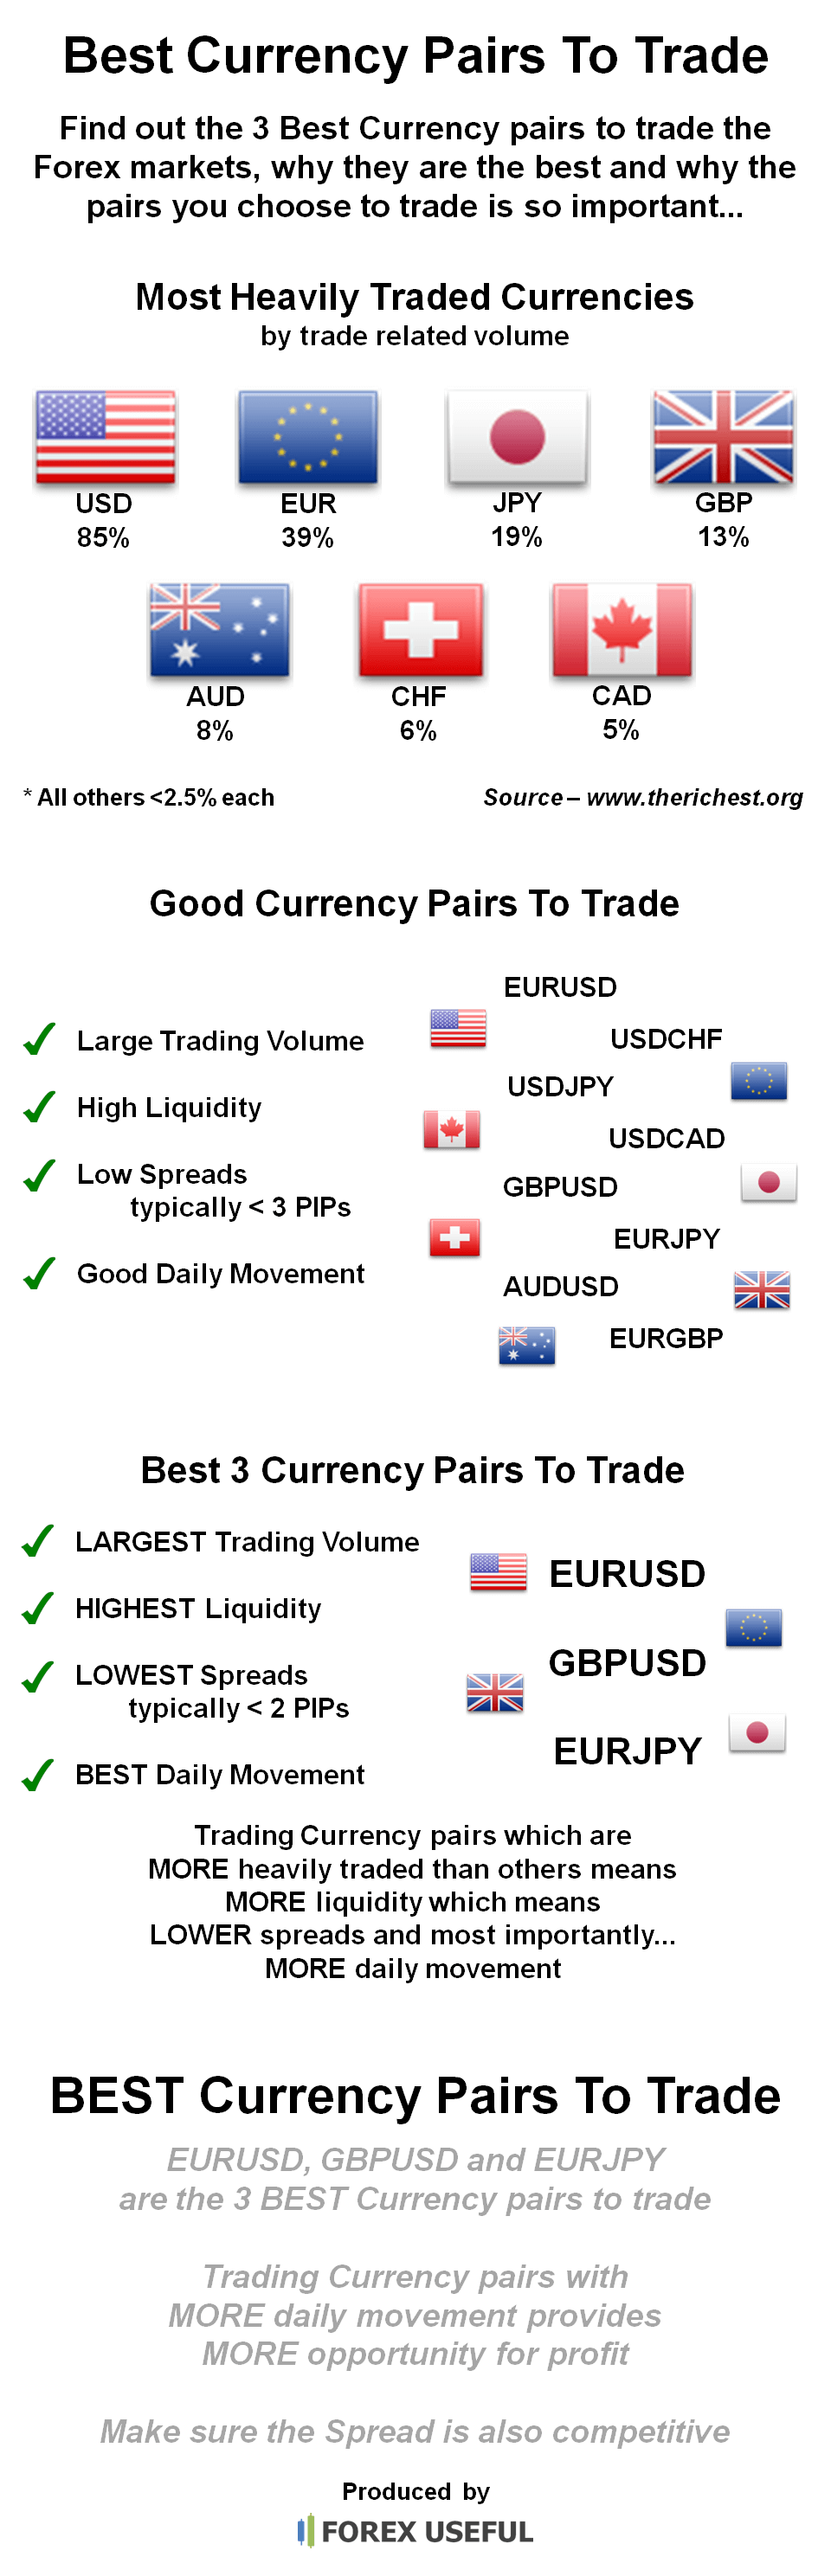 Best forex pair to trade now